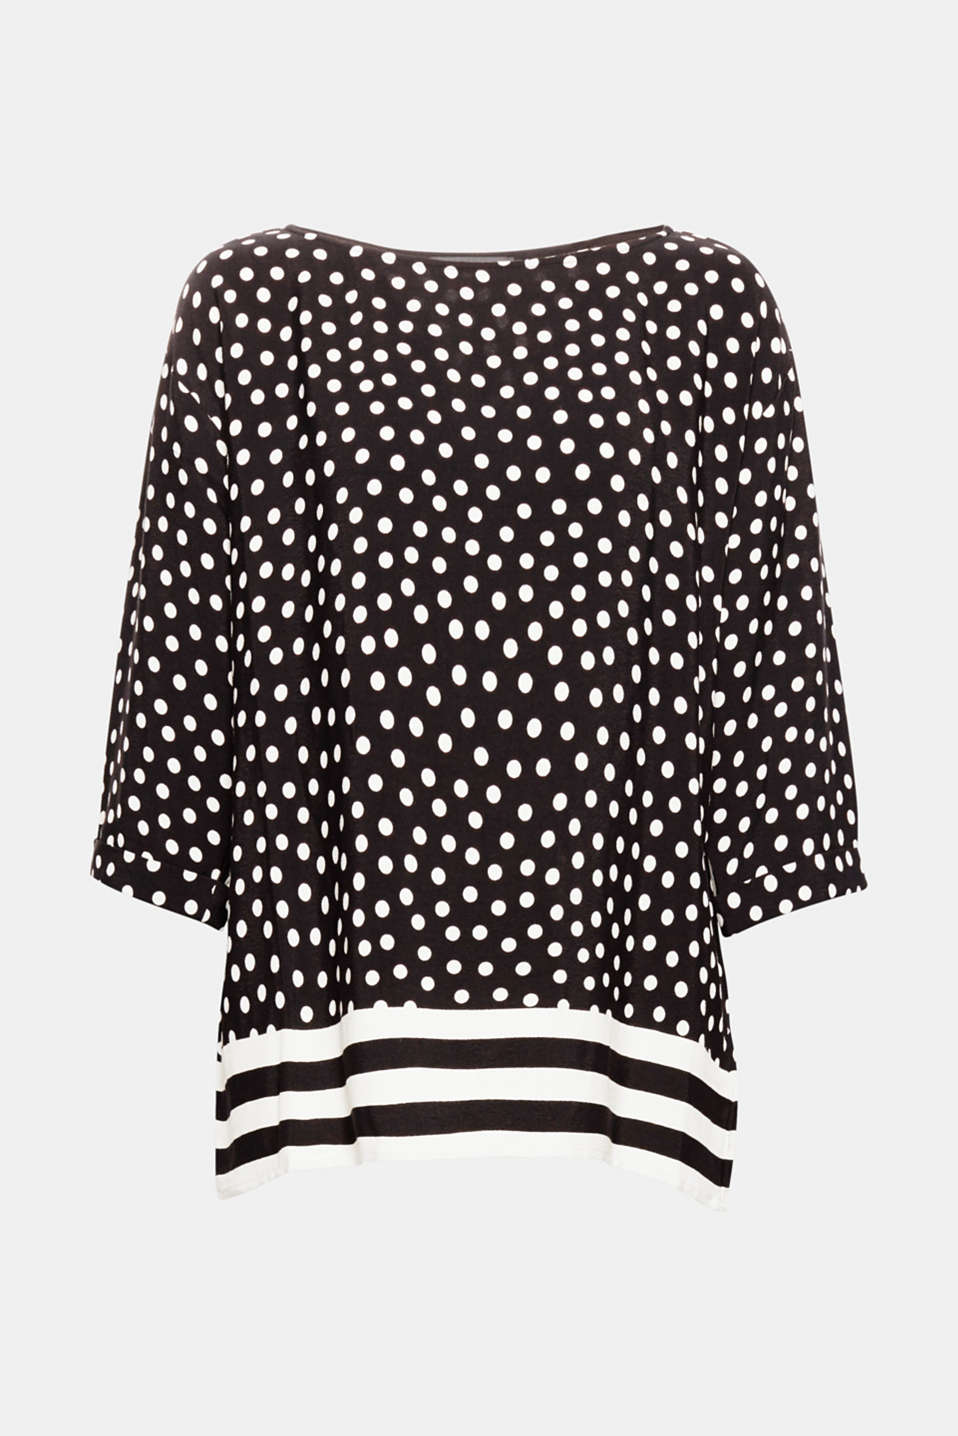 This flowing crêpe blouse in a trendy oversized style with polka dots and stripes is elegant and casual at the same time!